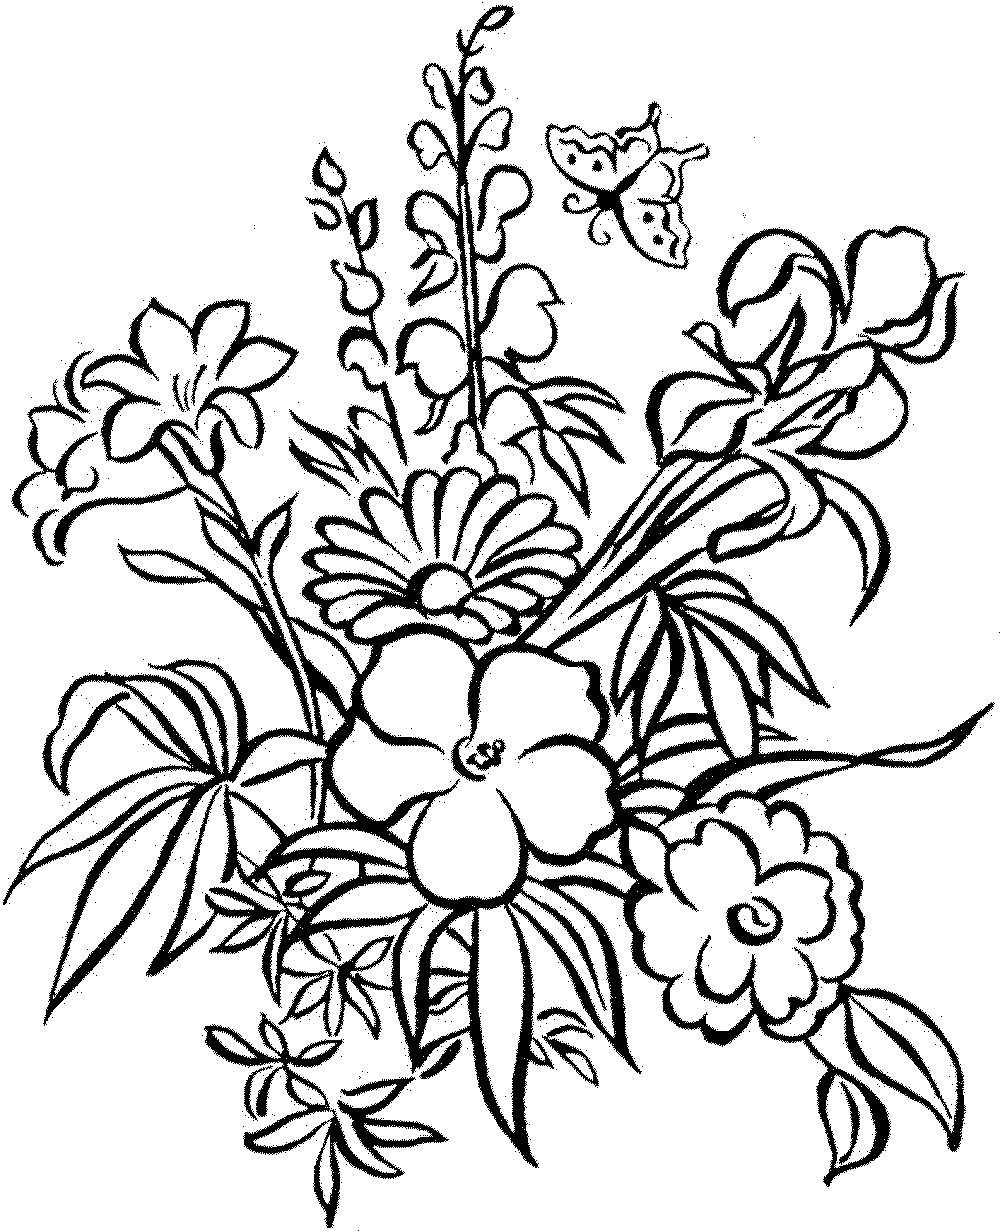 flower coloring pages to print flowers coloring pages coloring pages print flower to